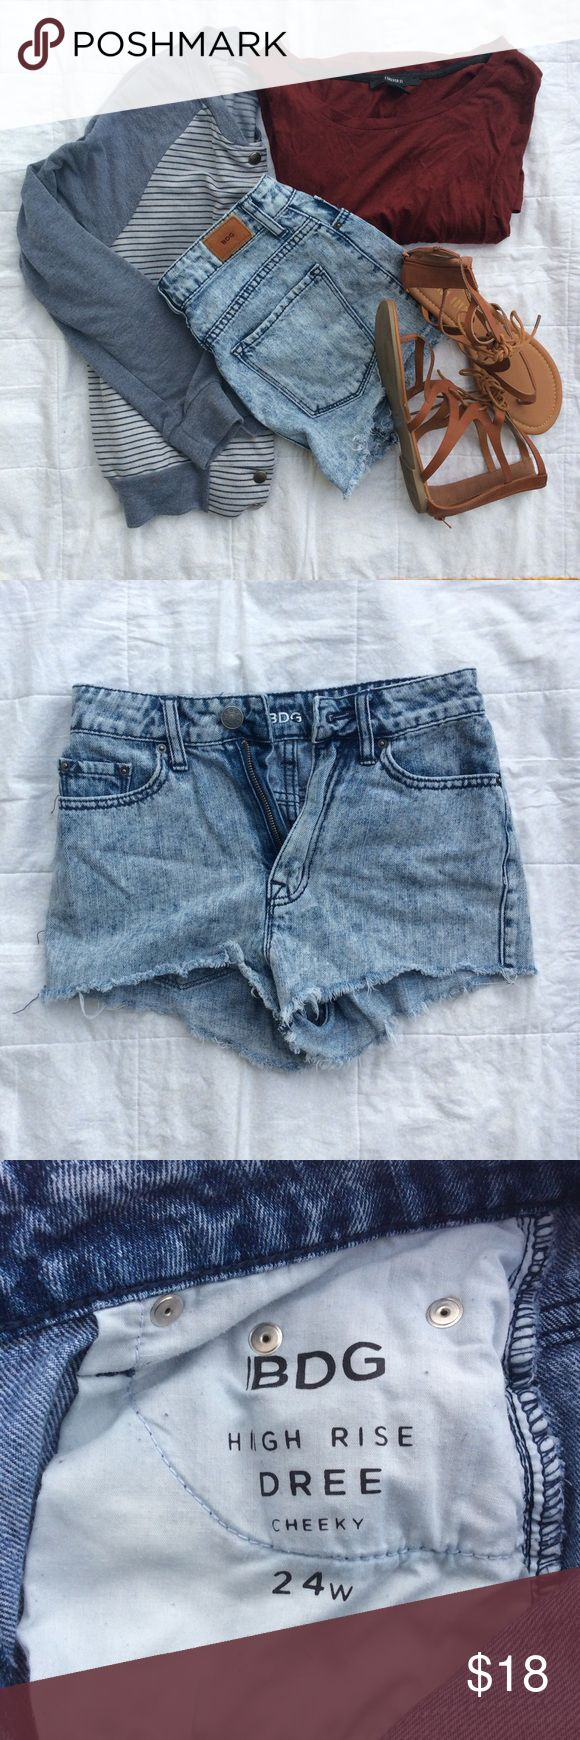 Urban Outfitters BDG High Rise Acid Wash Shorts High rise acid wash shorts from BDG sold at Urban Outfitters. Great condition. Size 24 W. Urban Outfitters Shorts Jean Shorts